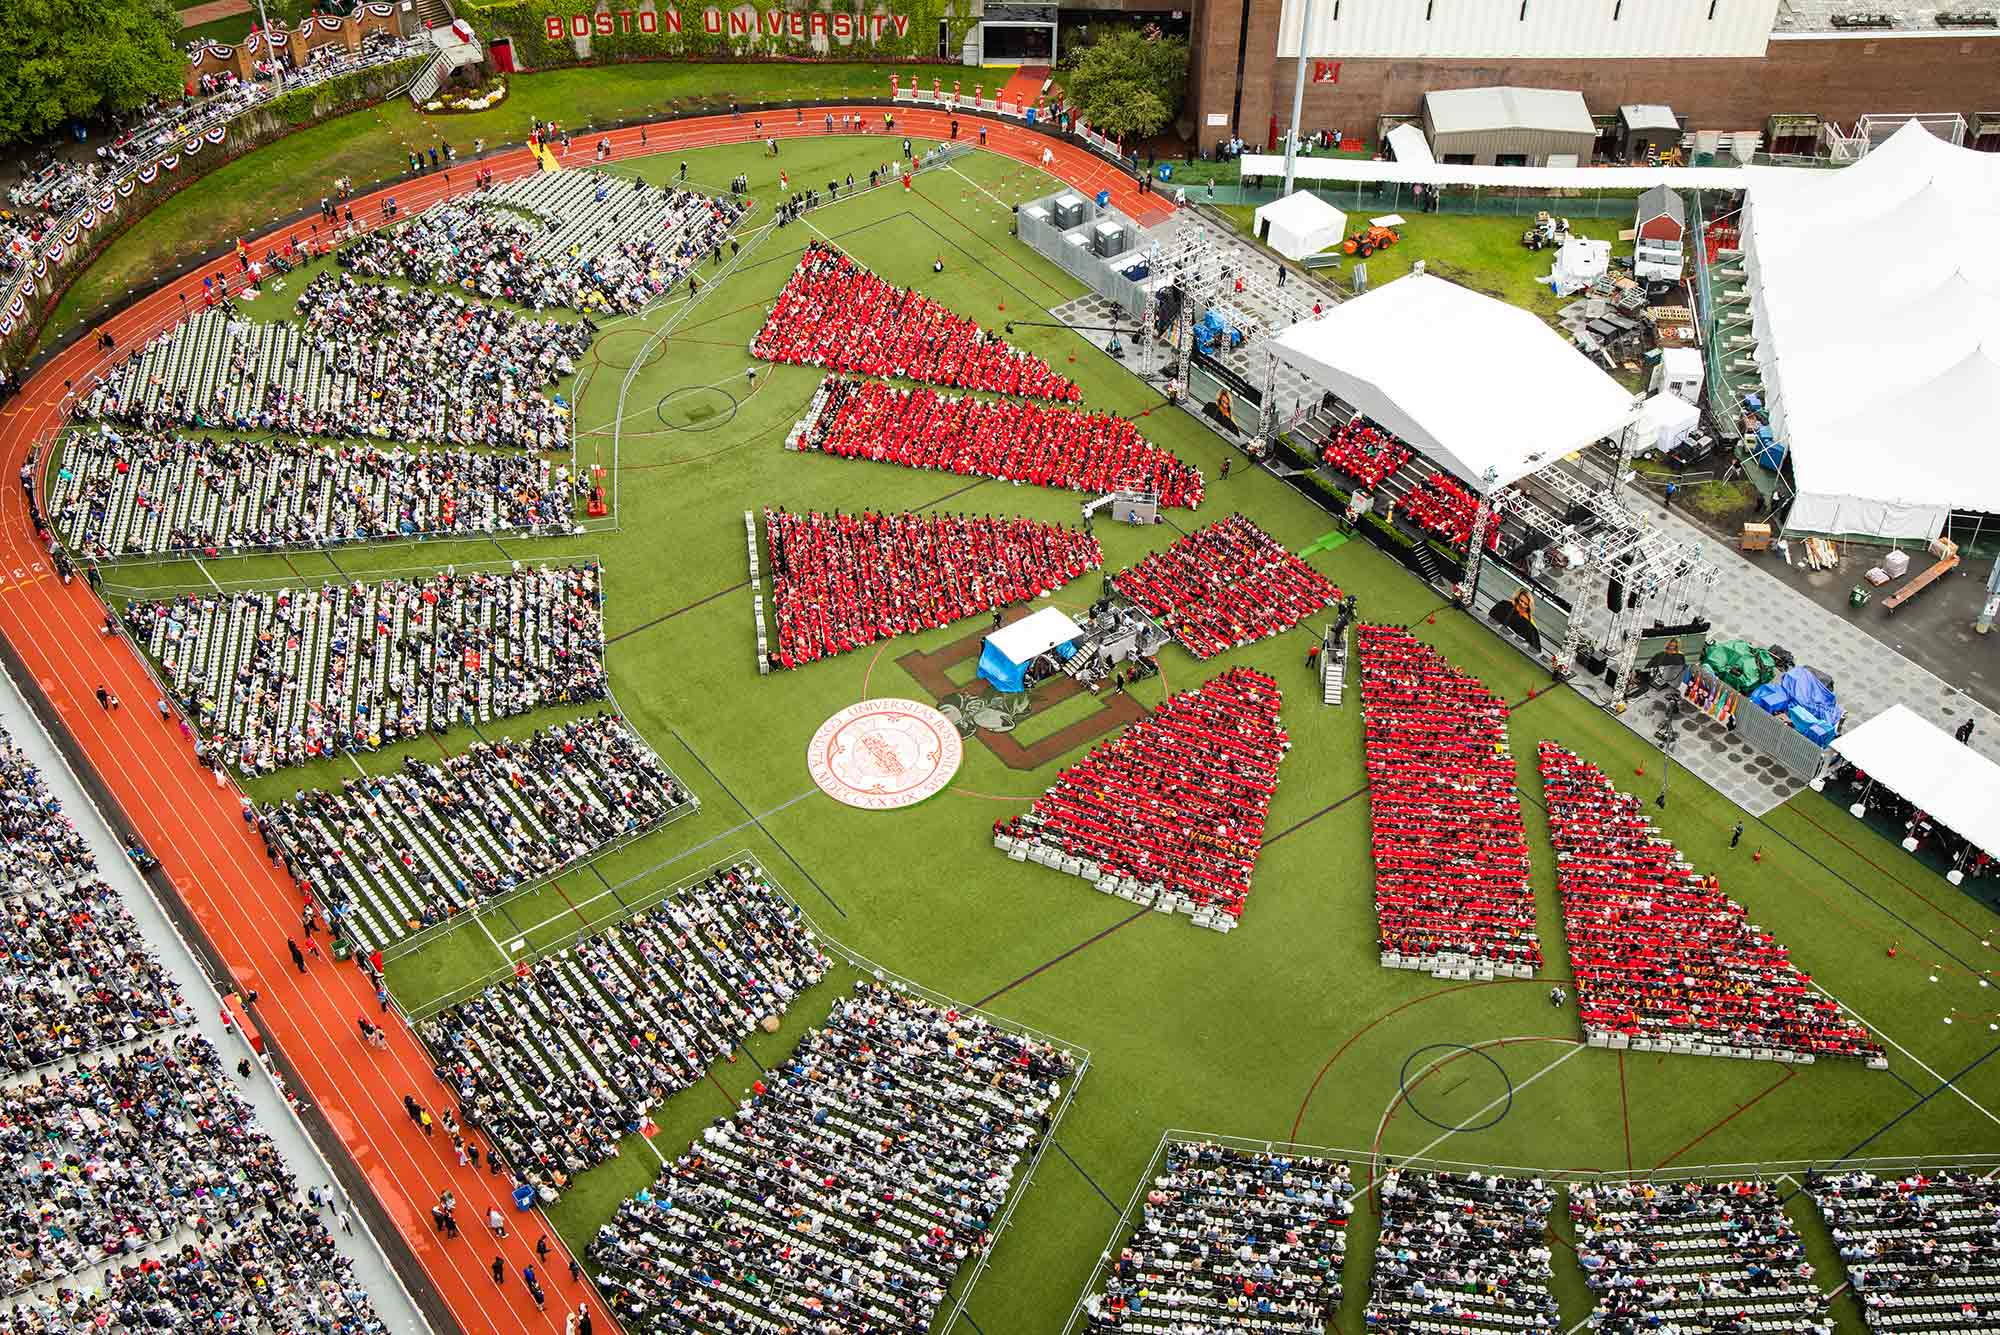 Aerial view of the 2019 Boston University Commencement on Nickerson Field on May 19, 2019.